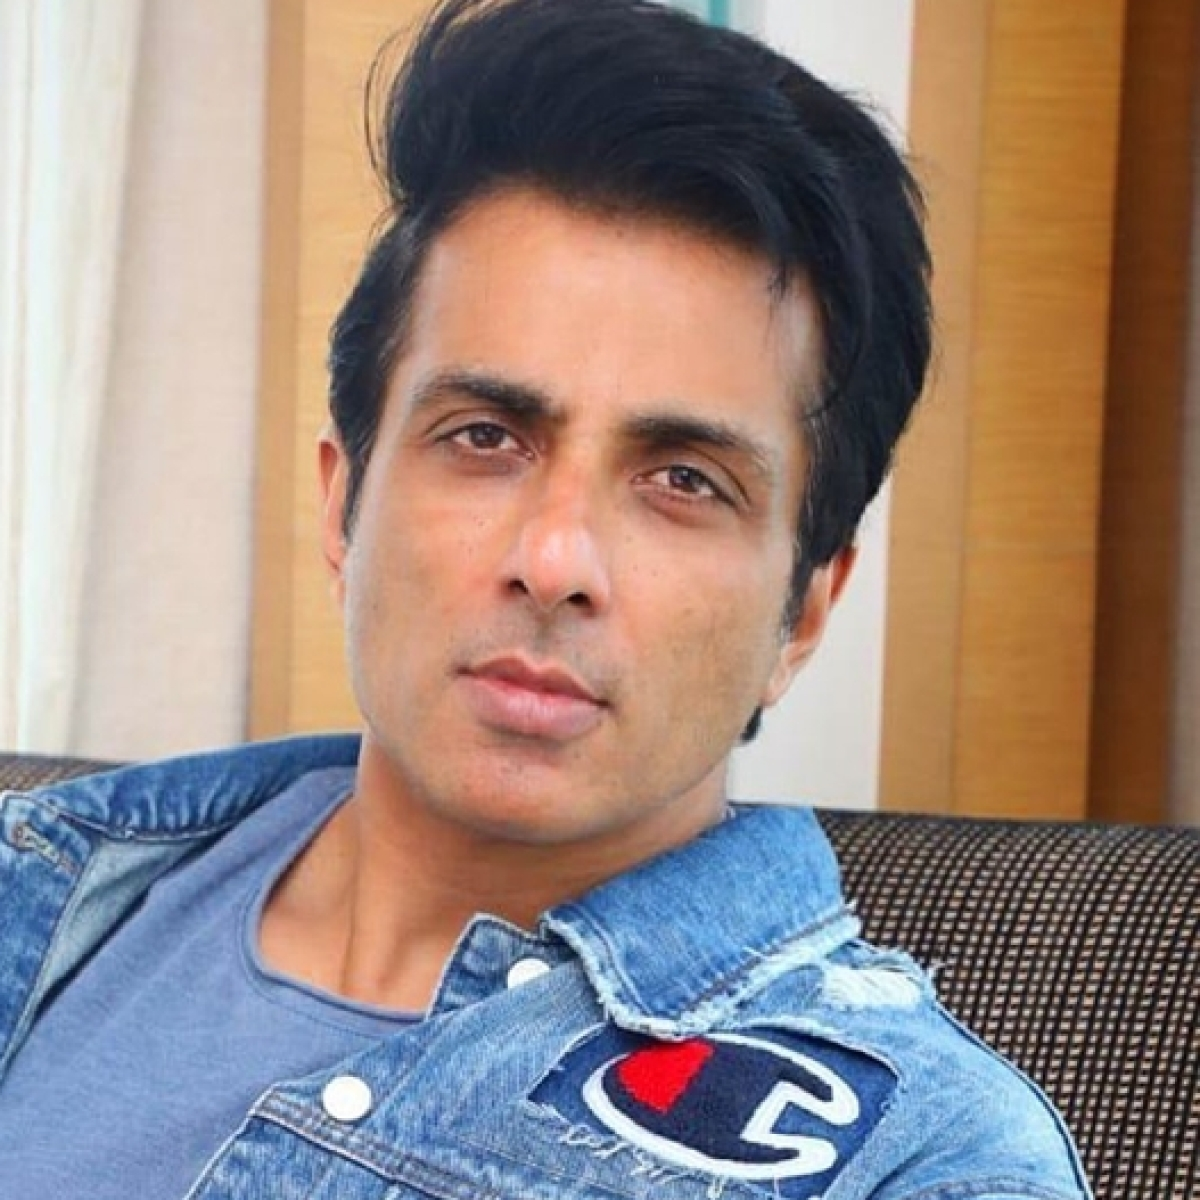 Watch: Sonu Sood shares video clip of phone notification bar filled with messages from migrant workers